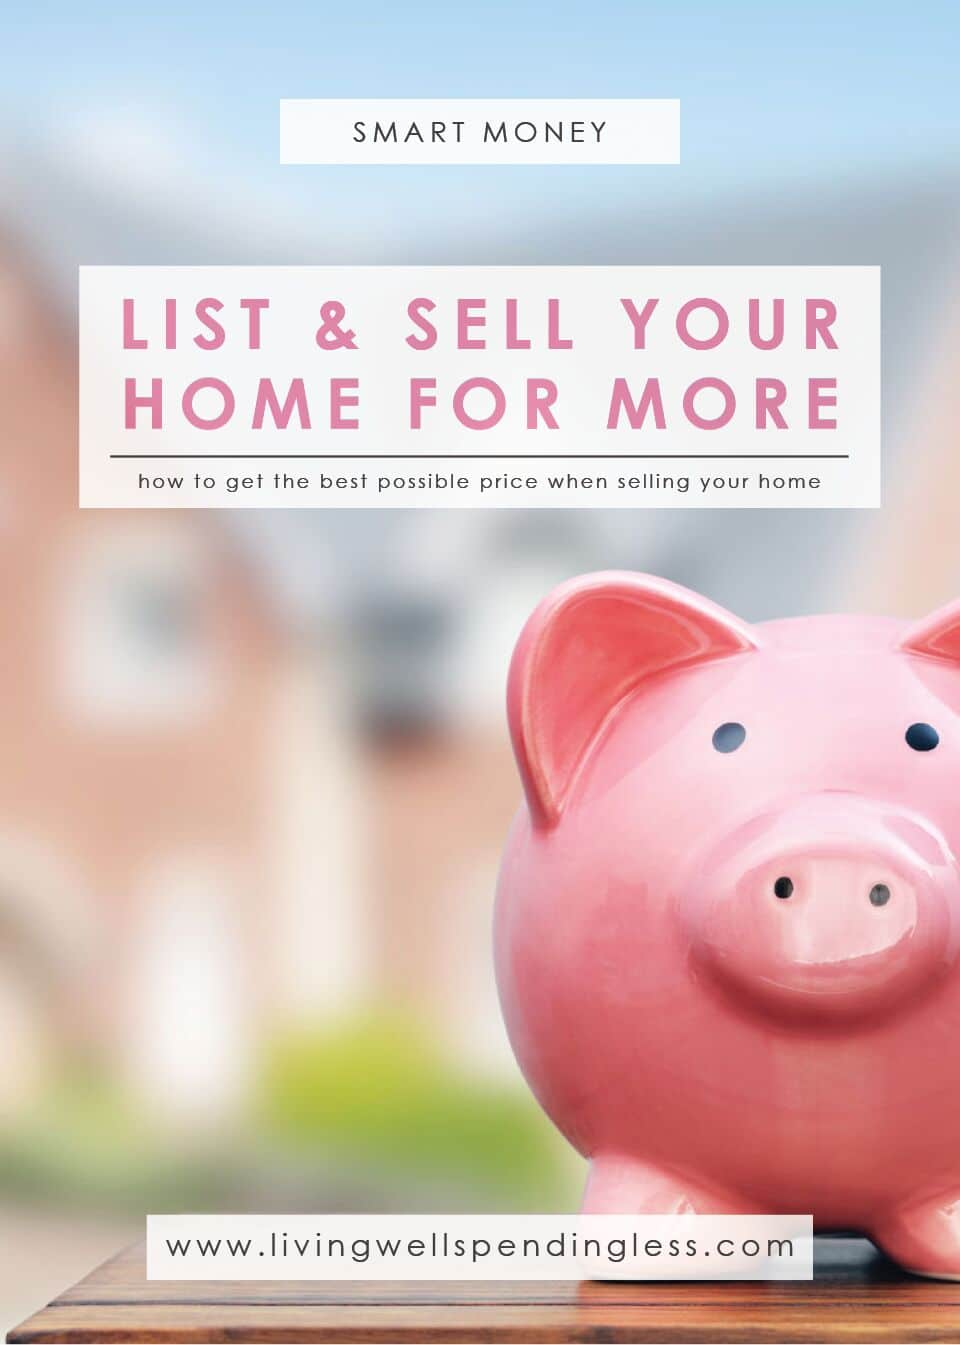 Best Possible Price When Selling Your Home | Home Selling | Best Price for Your Property | Real Esate 101 | Selling Your Home | Real Estate Selling | Listing Your Property